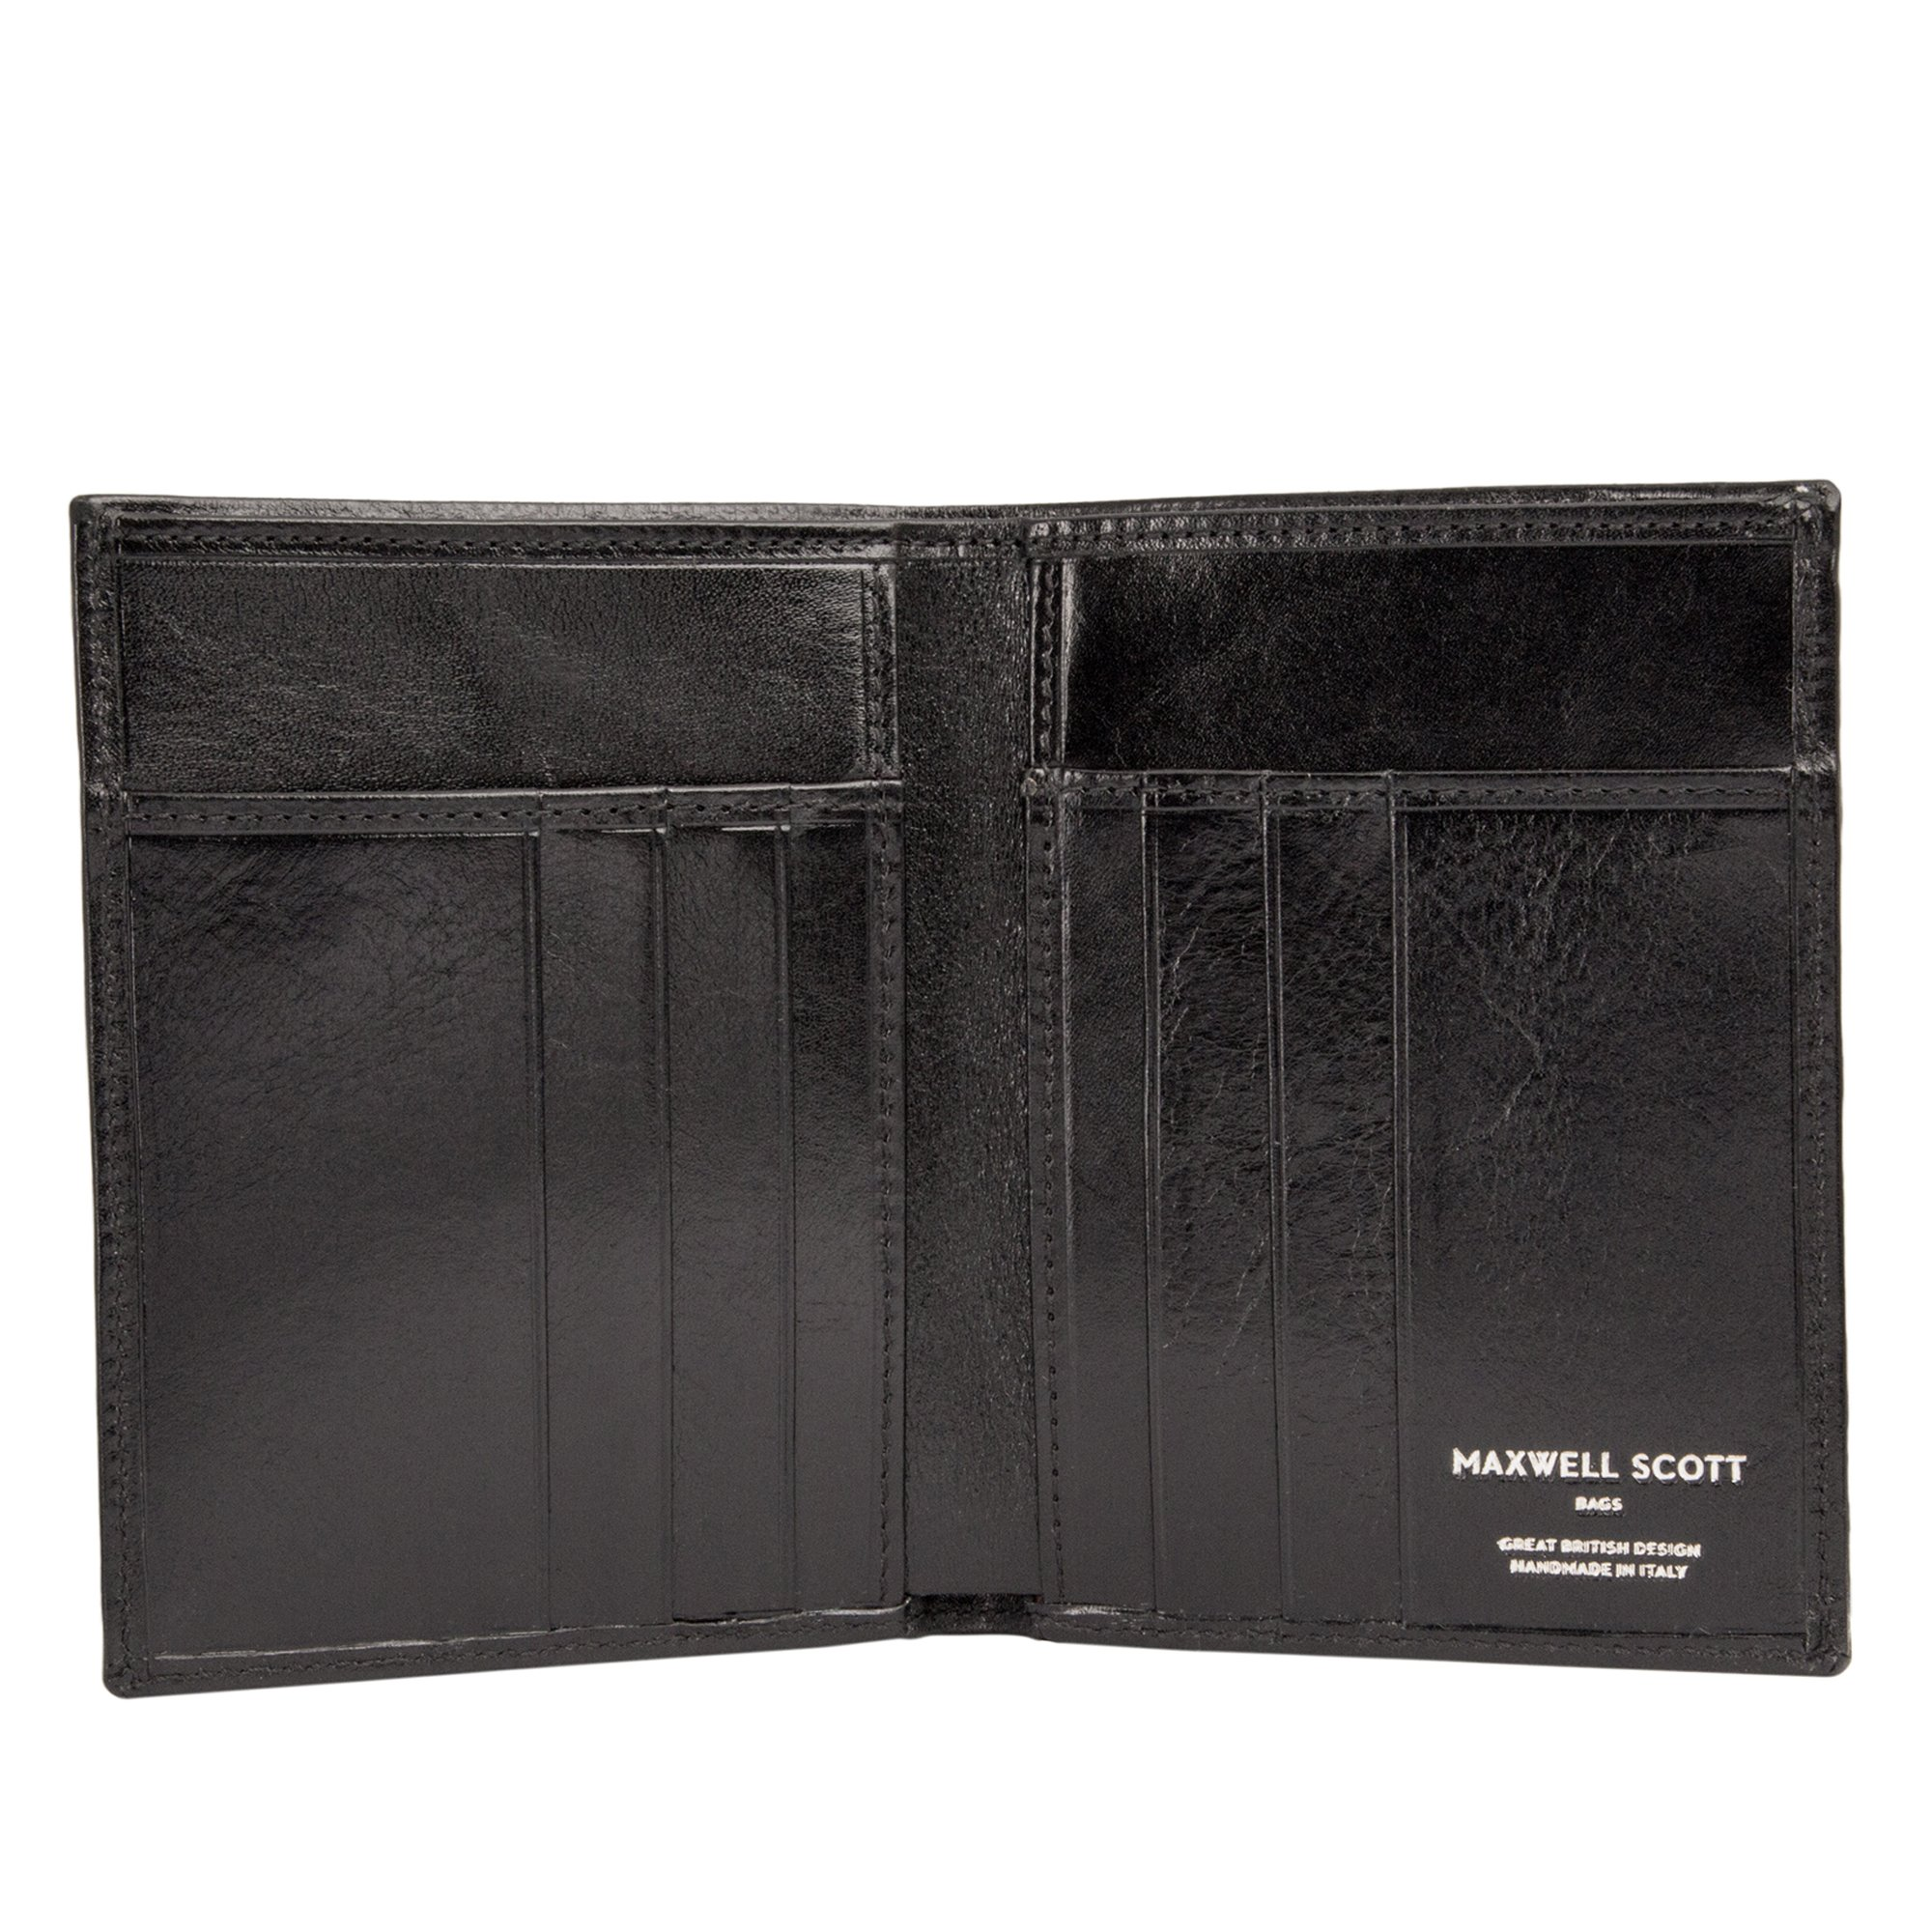 Maxwell Scott Luxury Black Leather Credit Card Wallet - One Size (The Salerno) by Maxwell Scott Bags